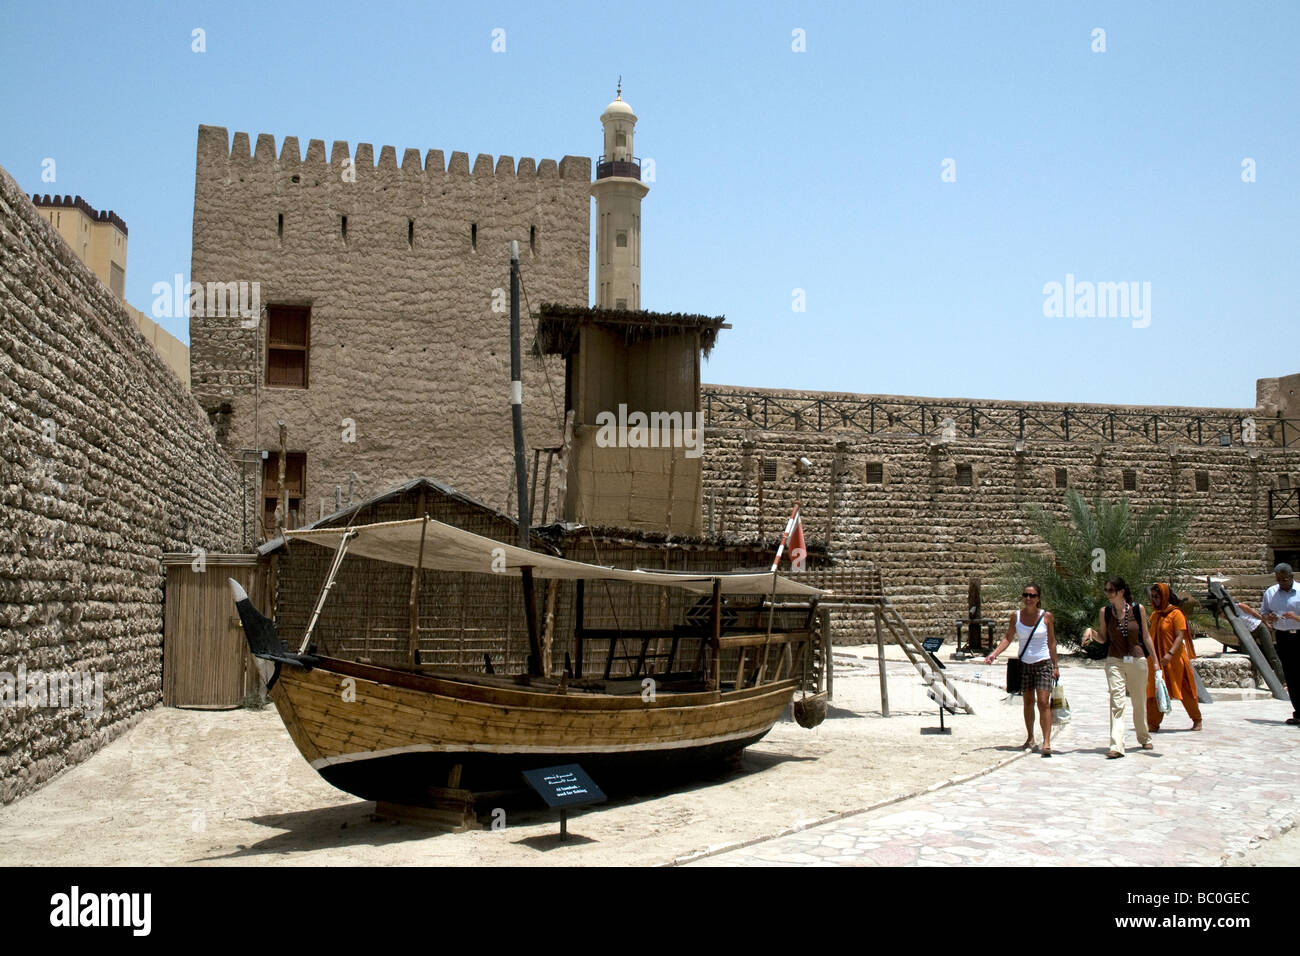 A classic Arab dhow, a small sambuk, is the centrepiece of the Dubai Museum courtyard - Stock Image